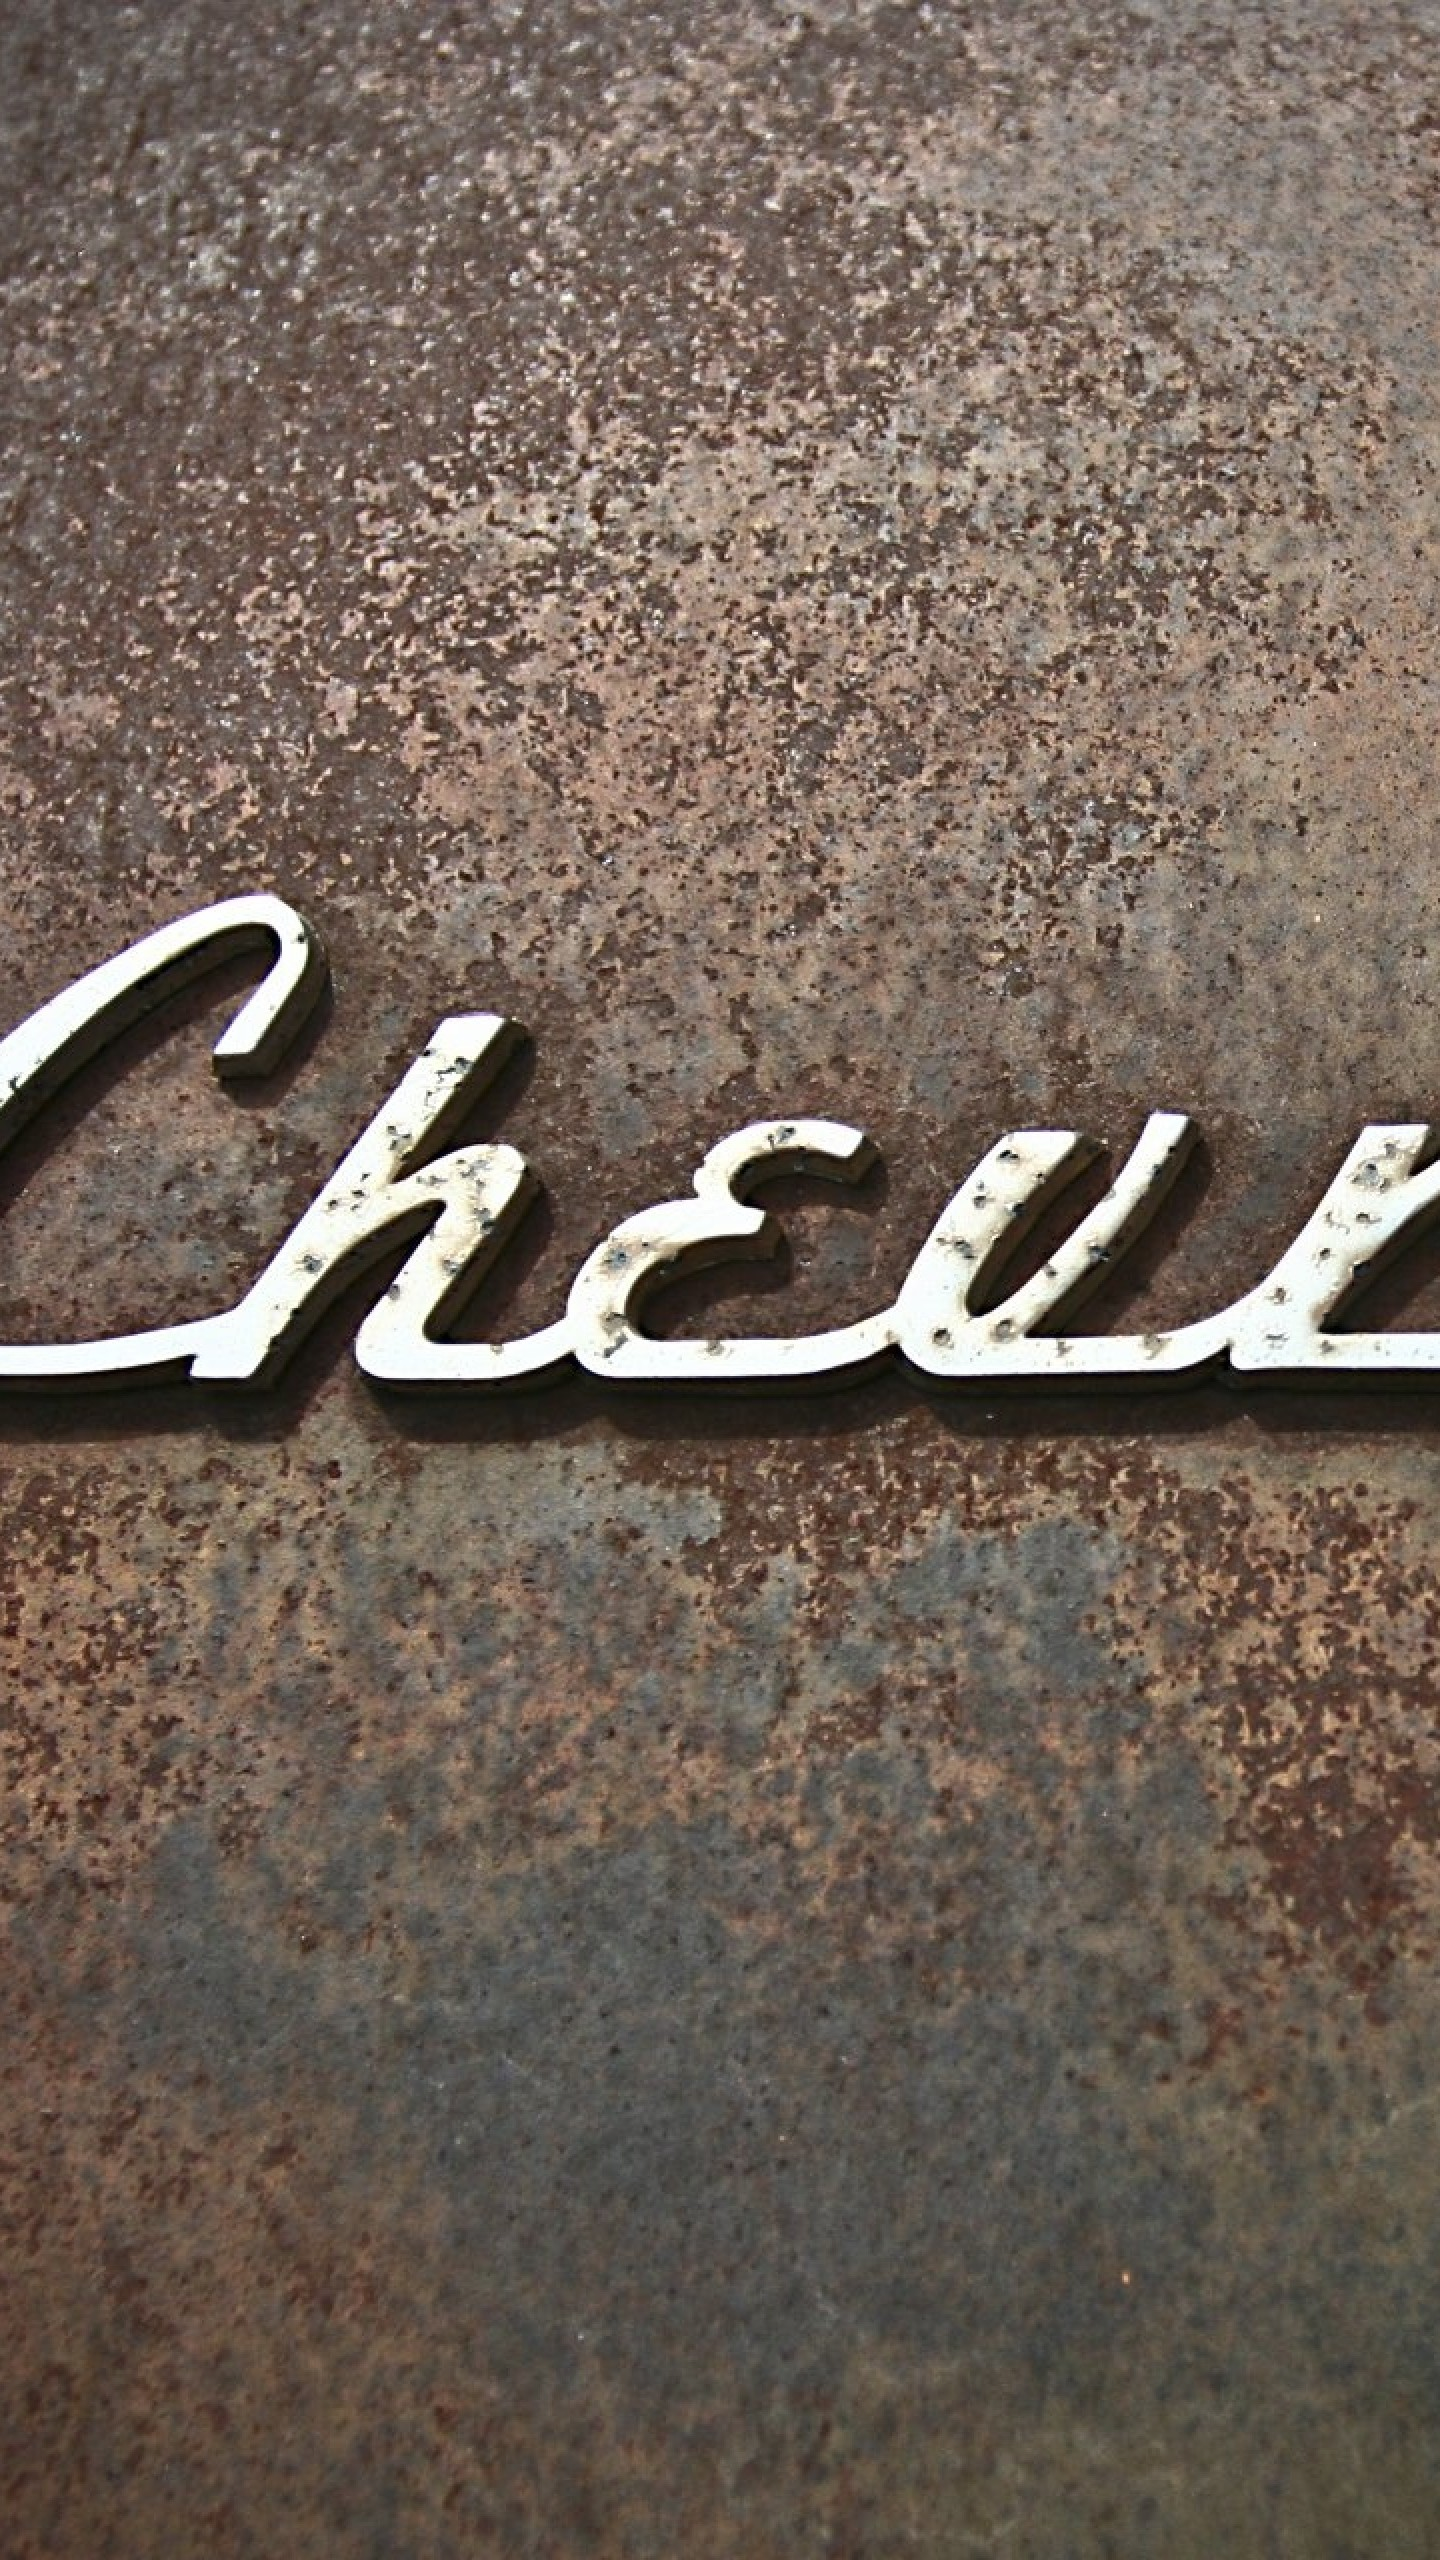 Wallpaper chevrolet, logo, rust